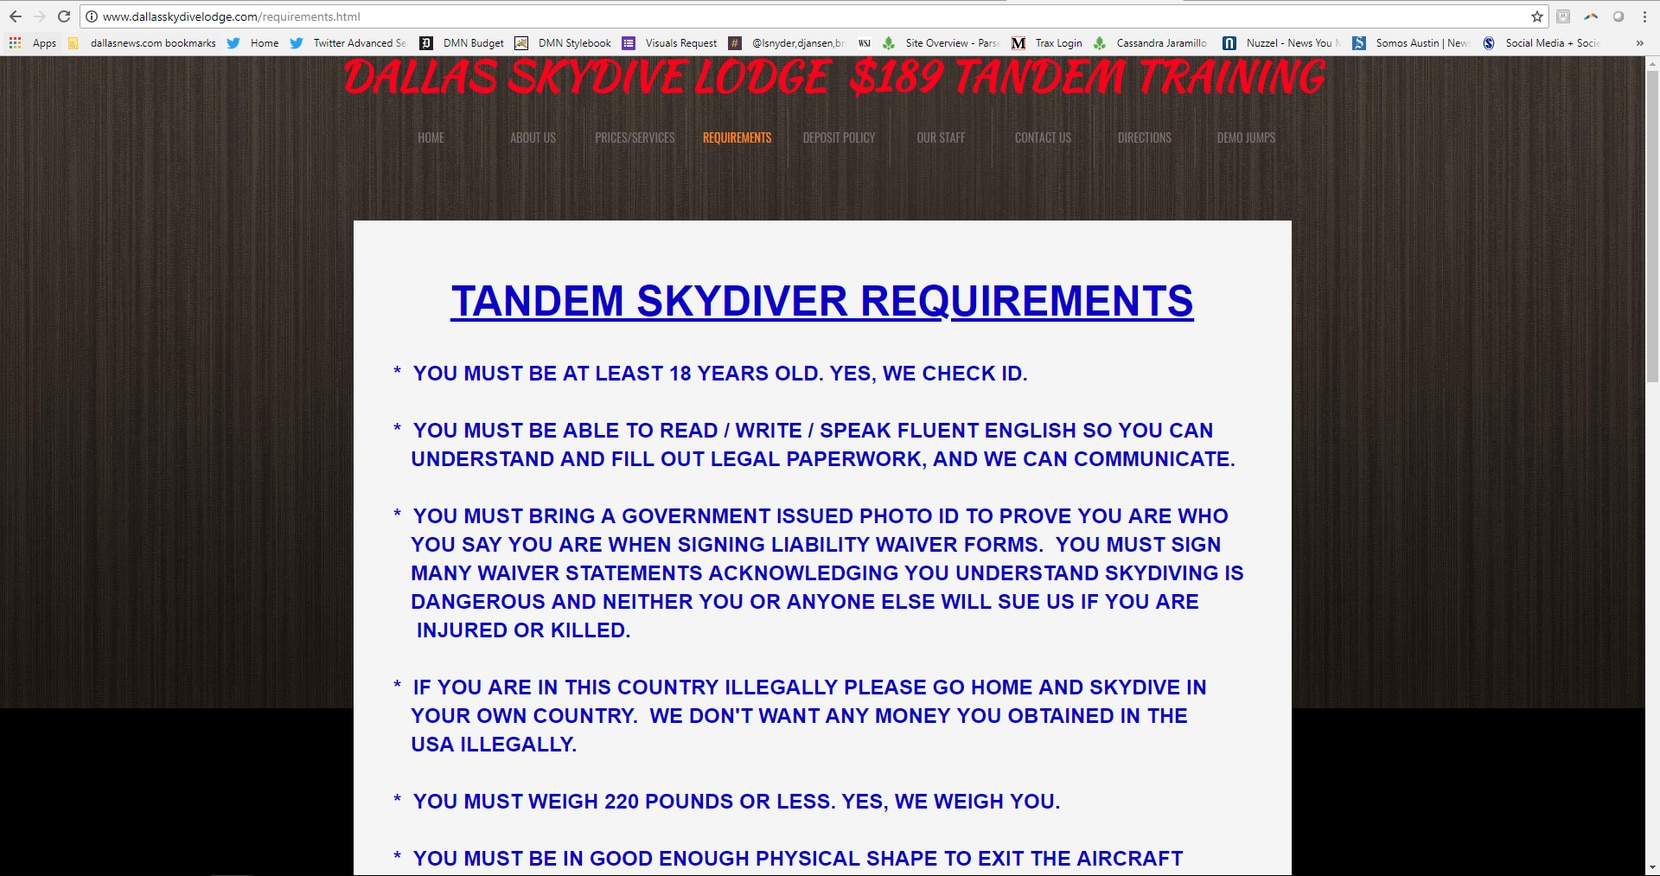 Screenshot of Skydive Tandem Greenville's rules on its website. The company is also referred to as Dallas Skydive Lodge.